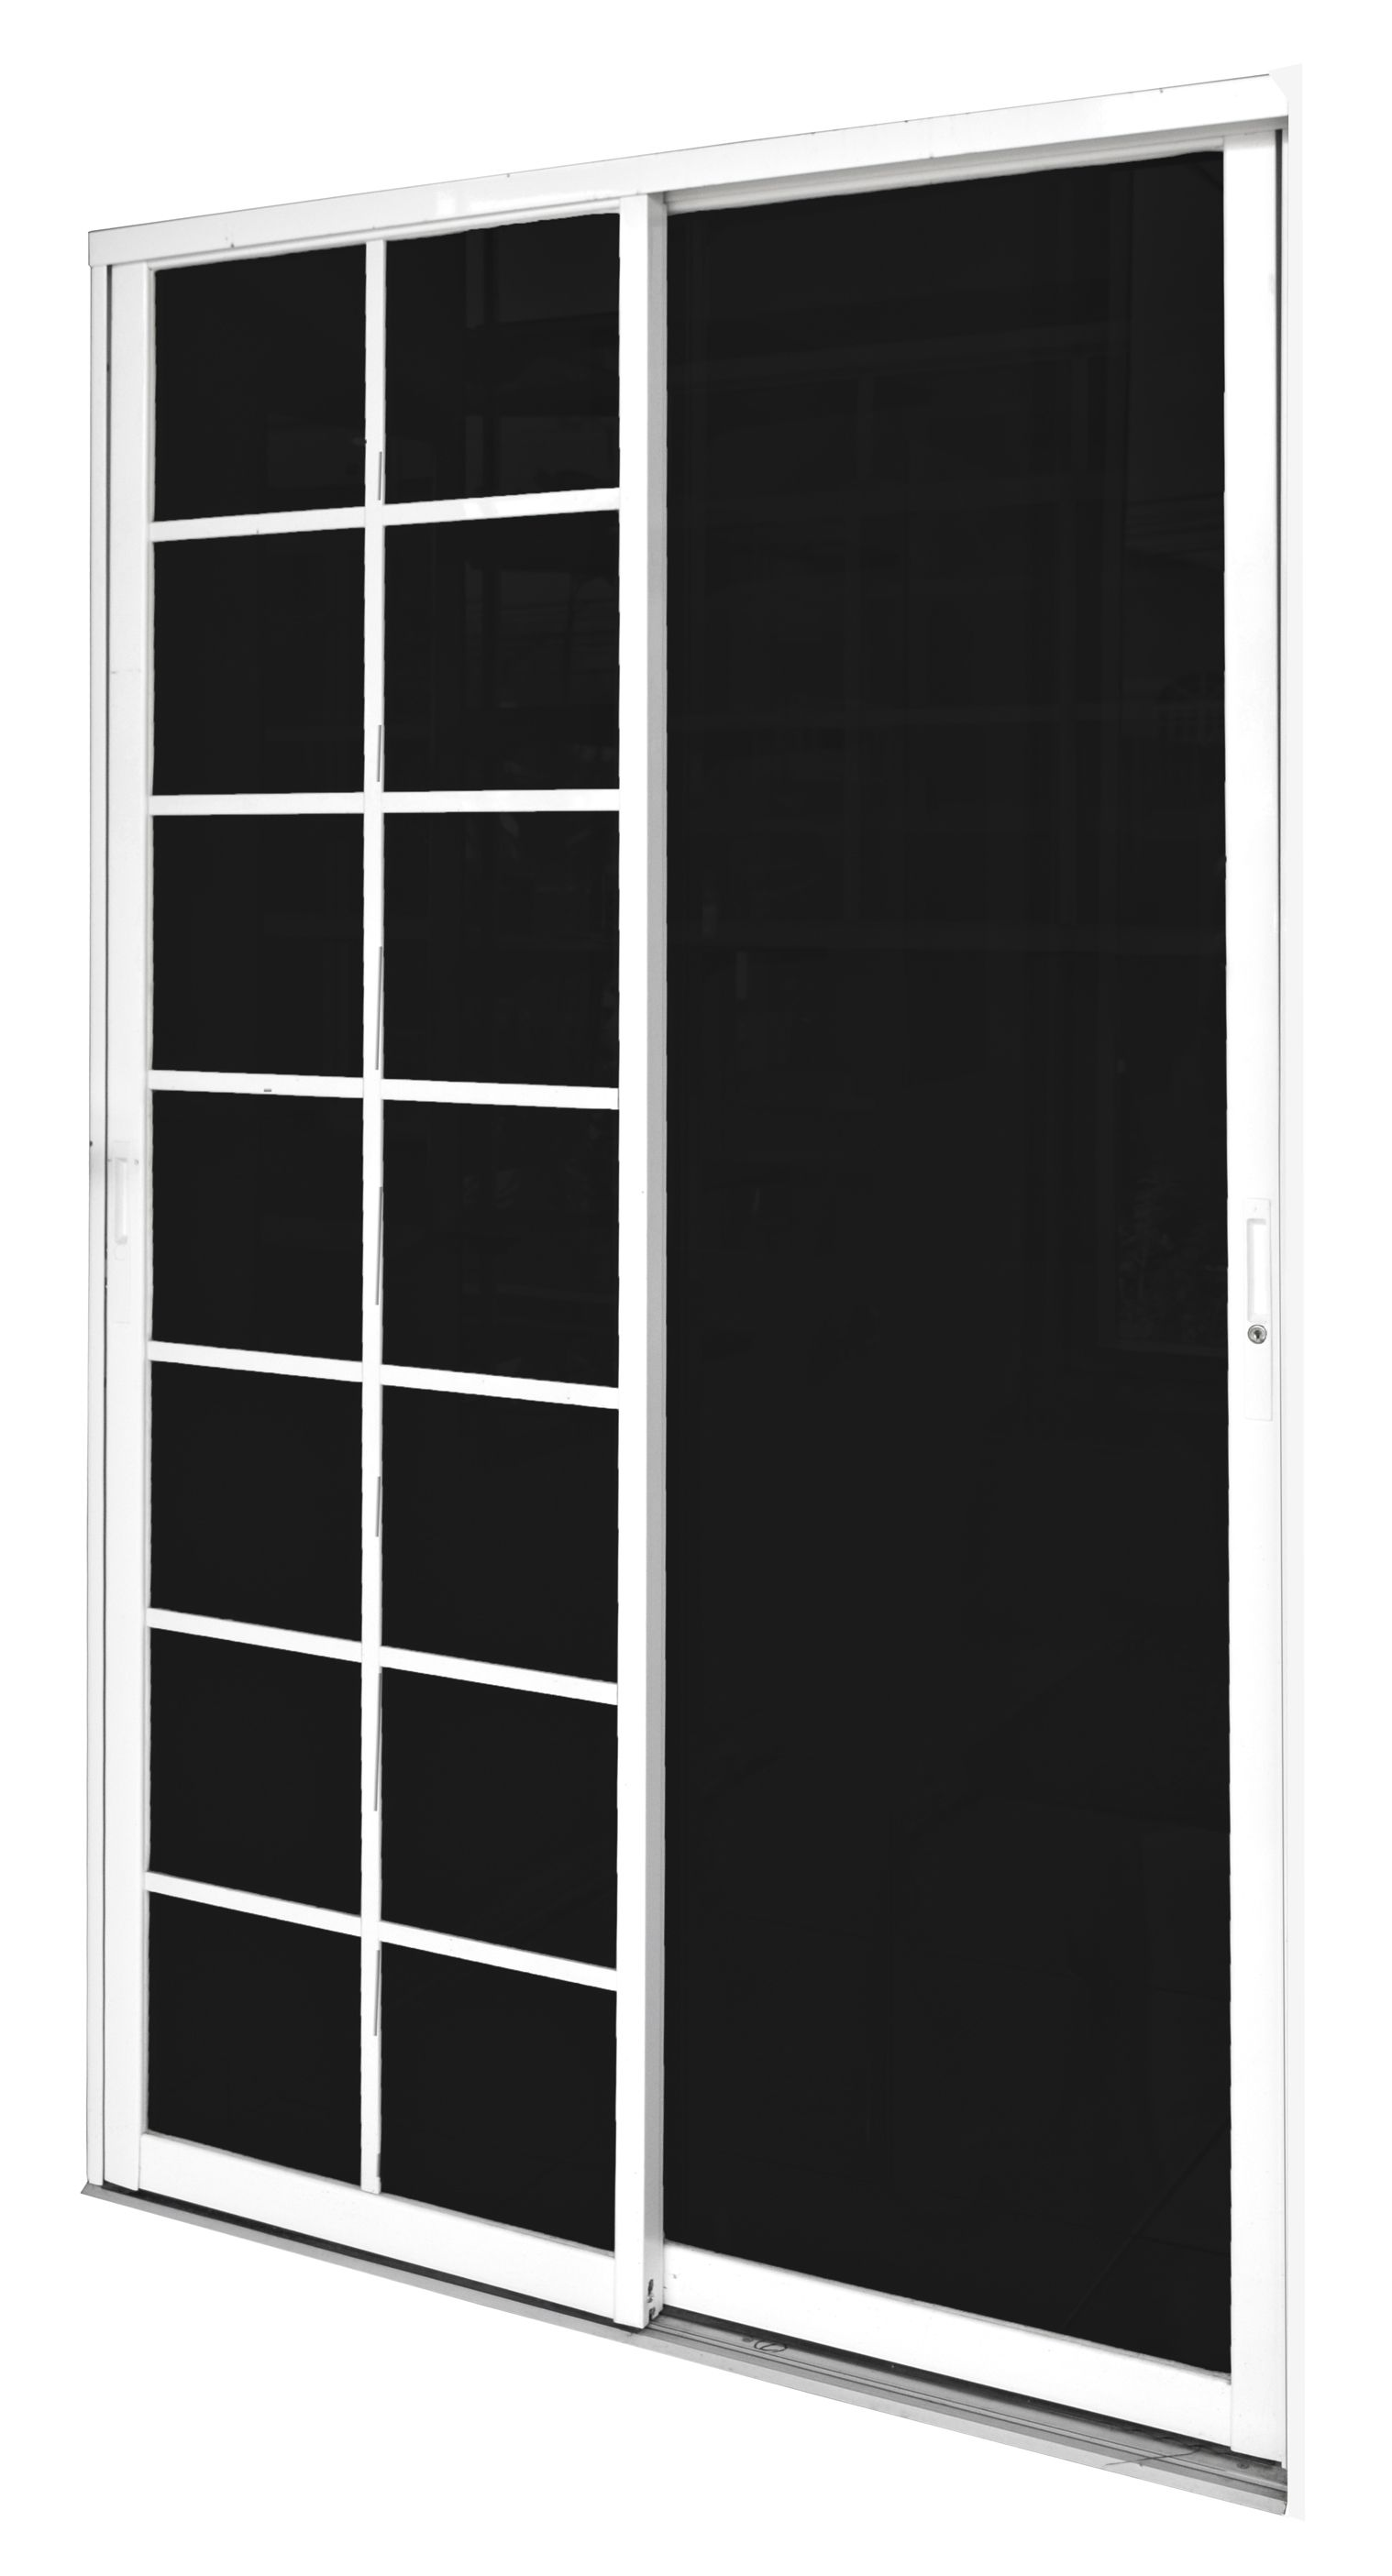 Aluminum Doors (35 Products)